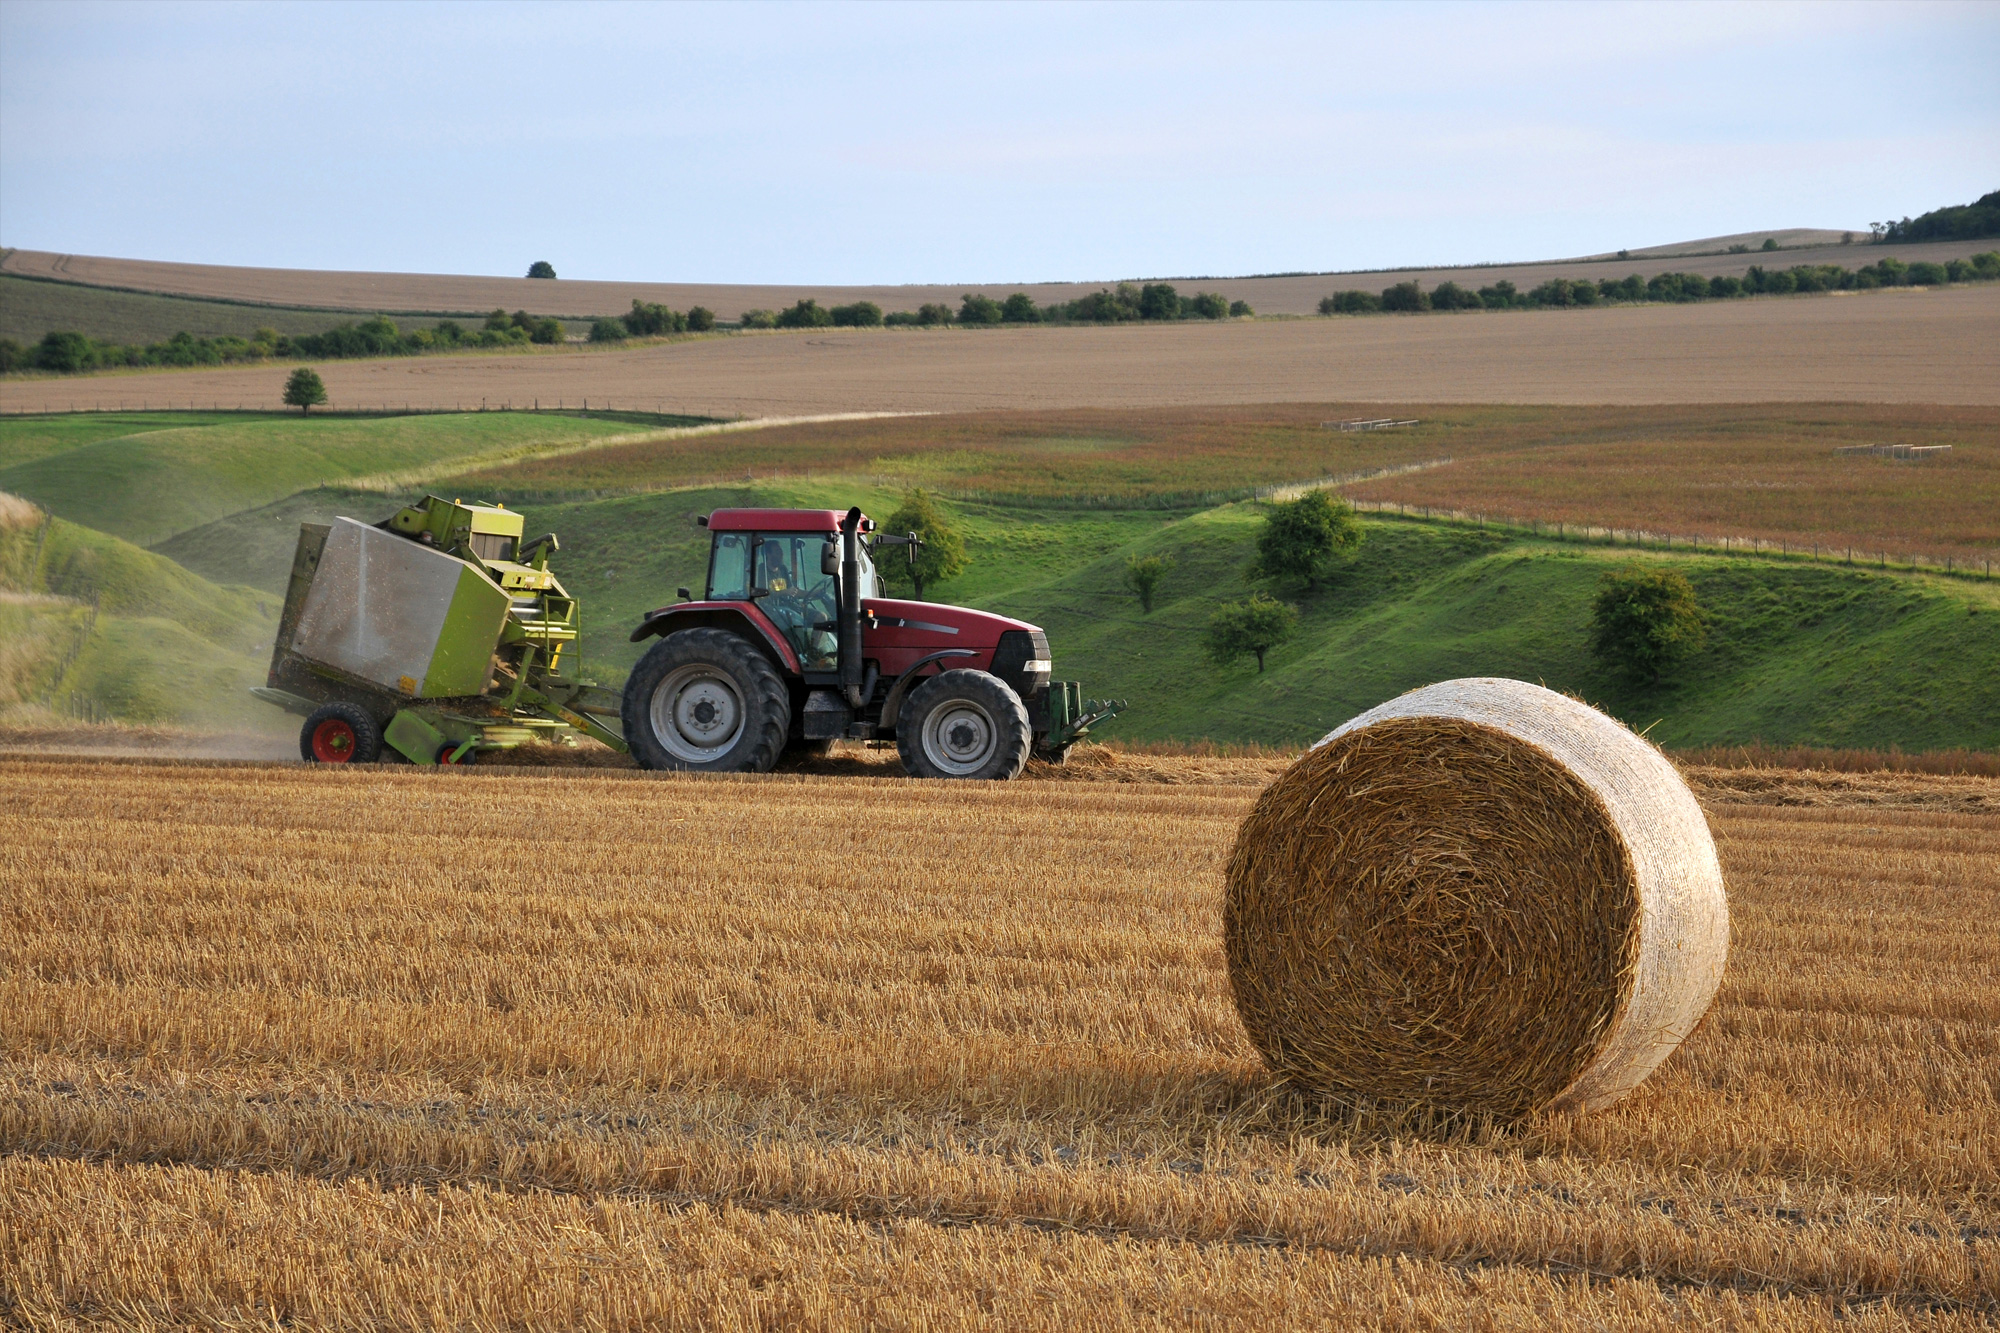 Tractor in a field behind a circular hay bale